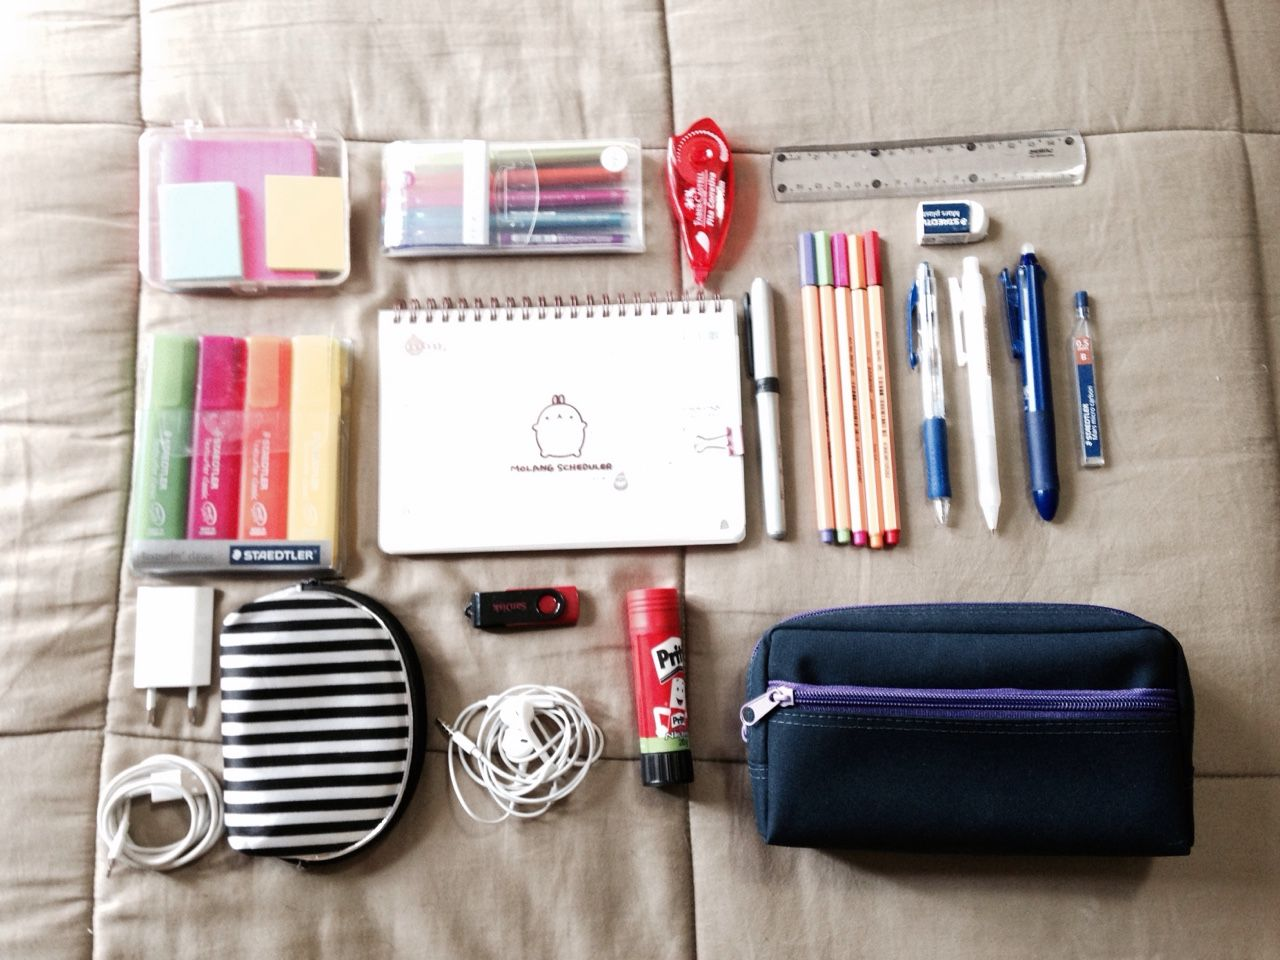 How can i stay organized in high school, without being to nerdy?